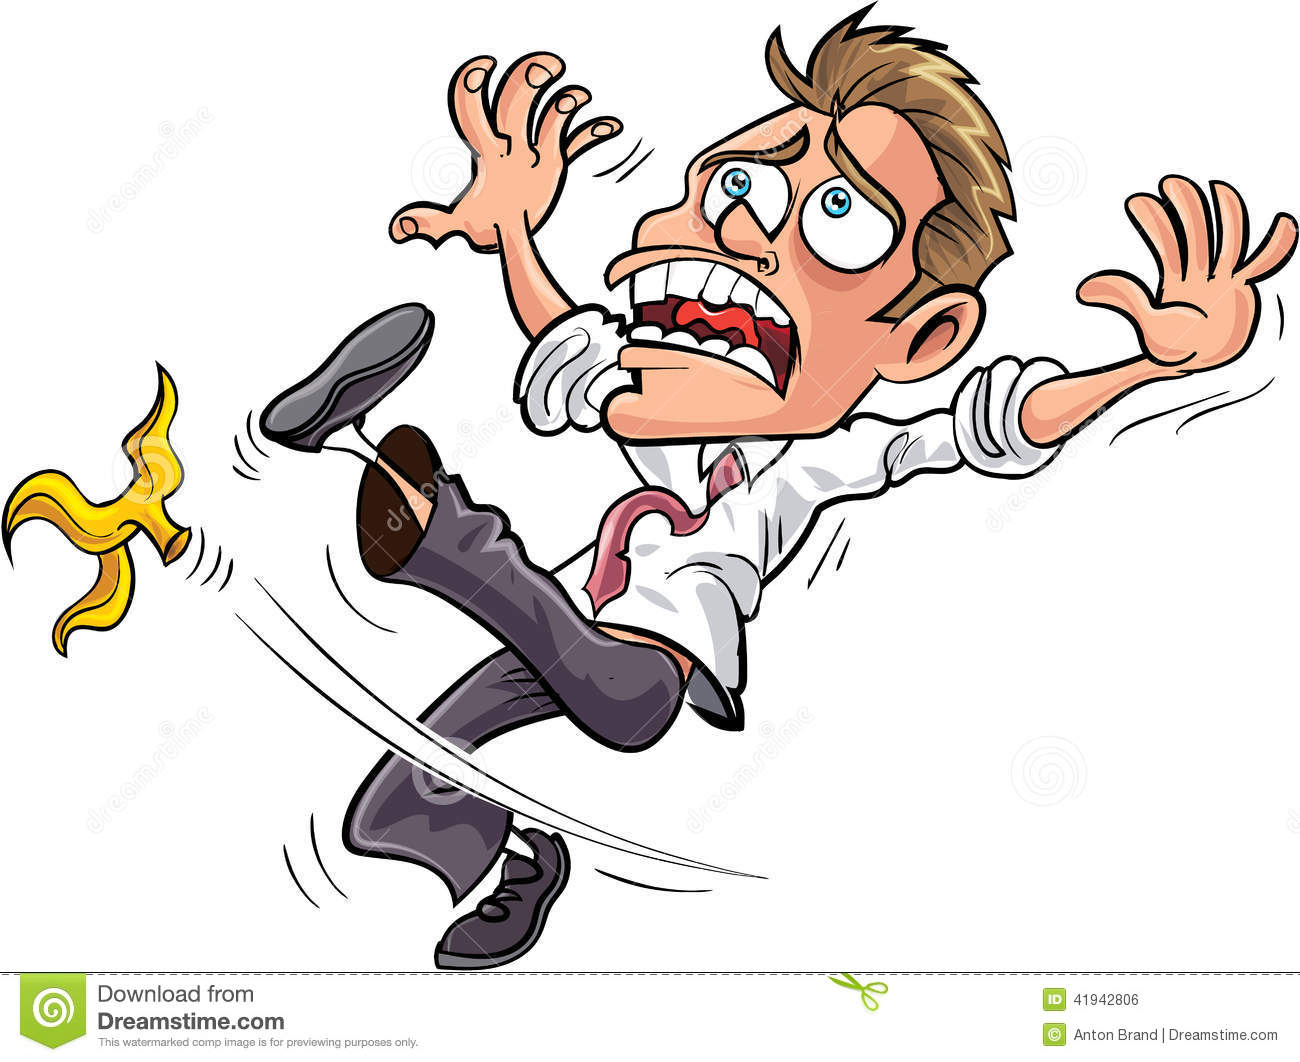 Stock Illustration Cartoon Businessman Slipping Banana Peel Isolated Image41942806 likewise 2014 Peugeot 301 New Car Review likewise Royalty Free Stock Photography Cartoon Man Shouting Jumping Image15397937 likewise Jump Off The Cliff together with Sleepy Cartoon. on cartoon of someone falling